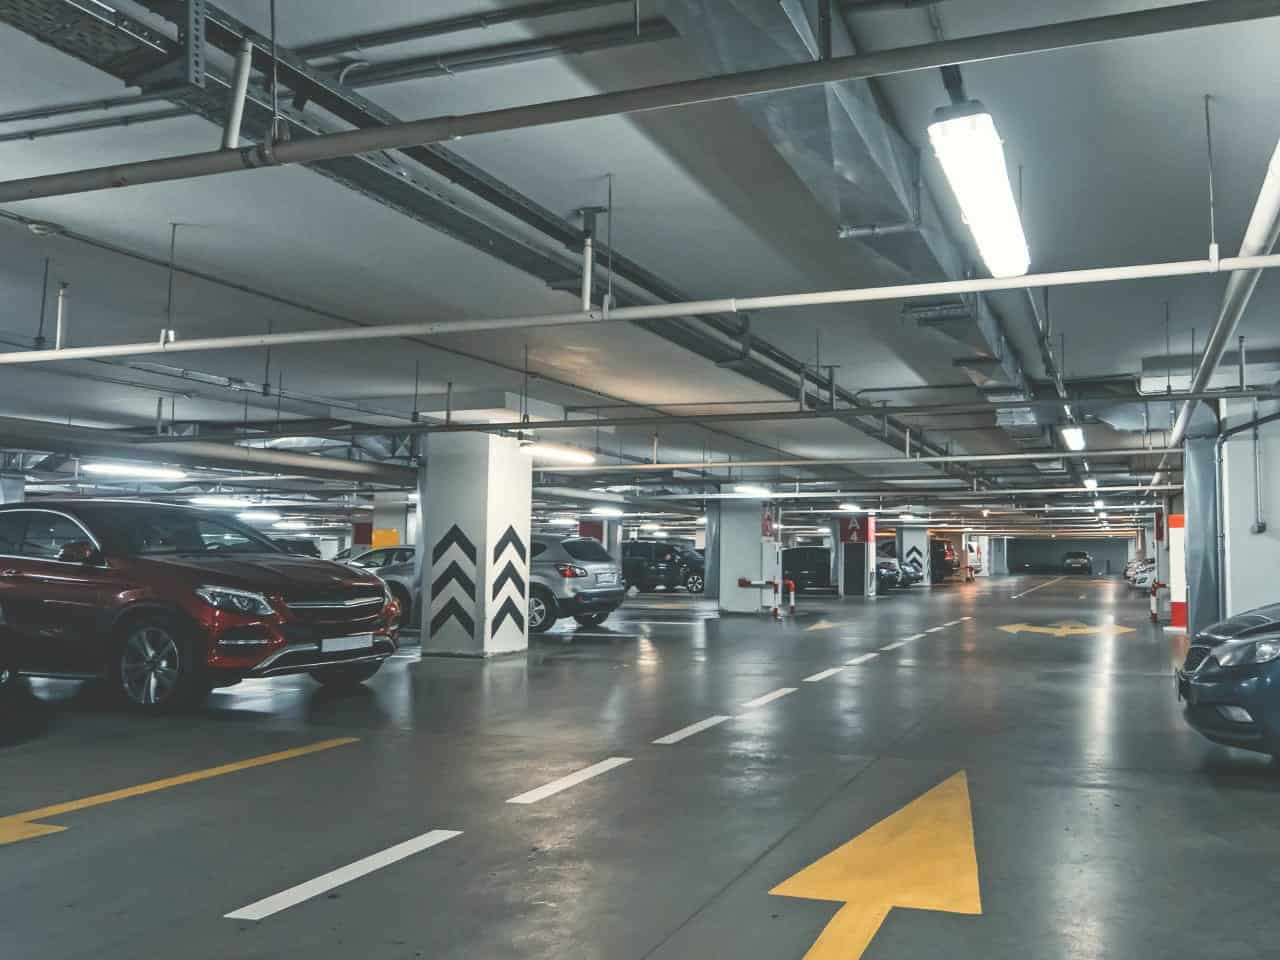 Parking structure services